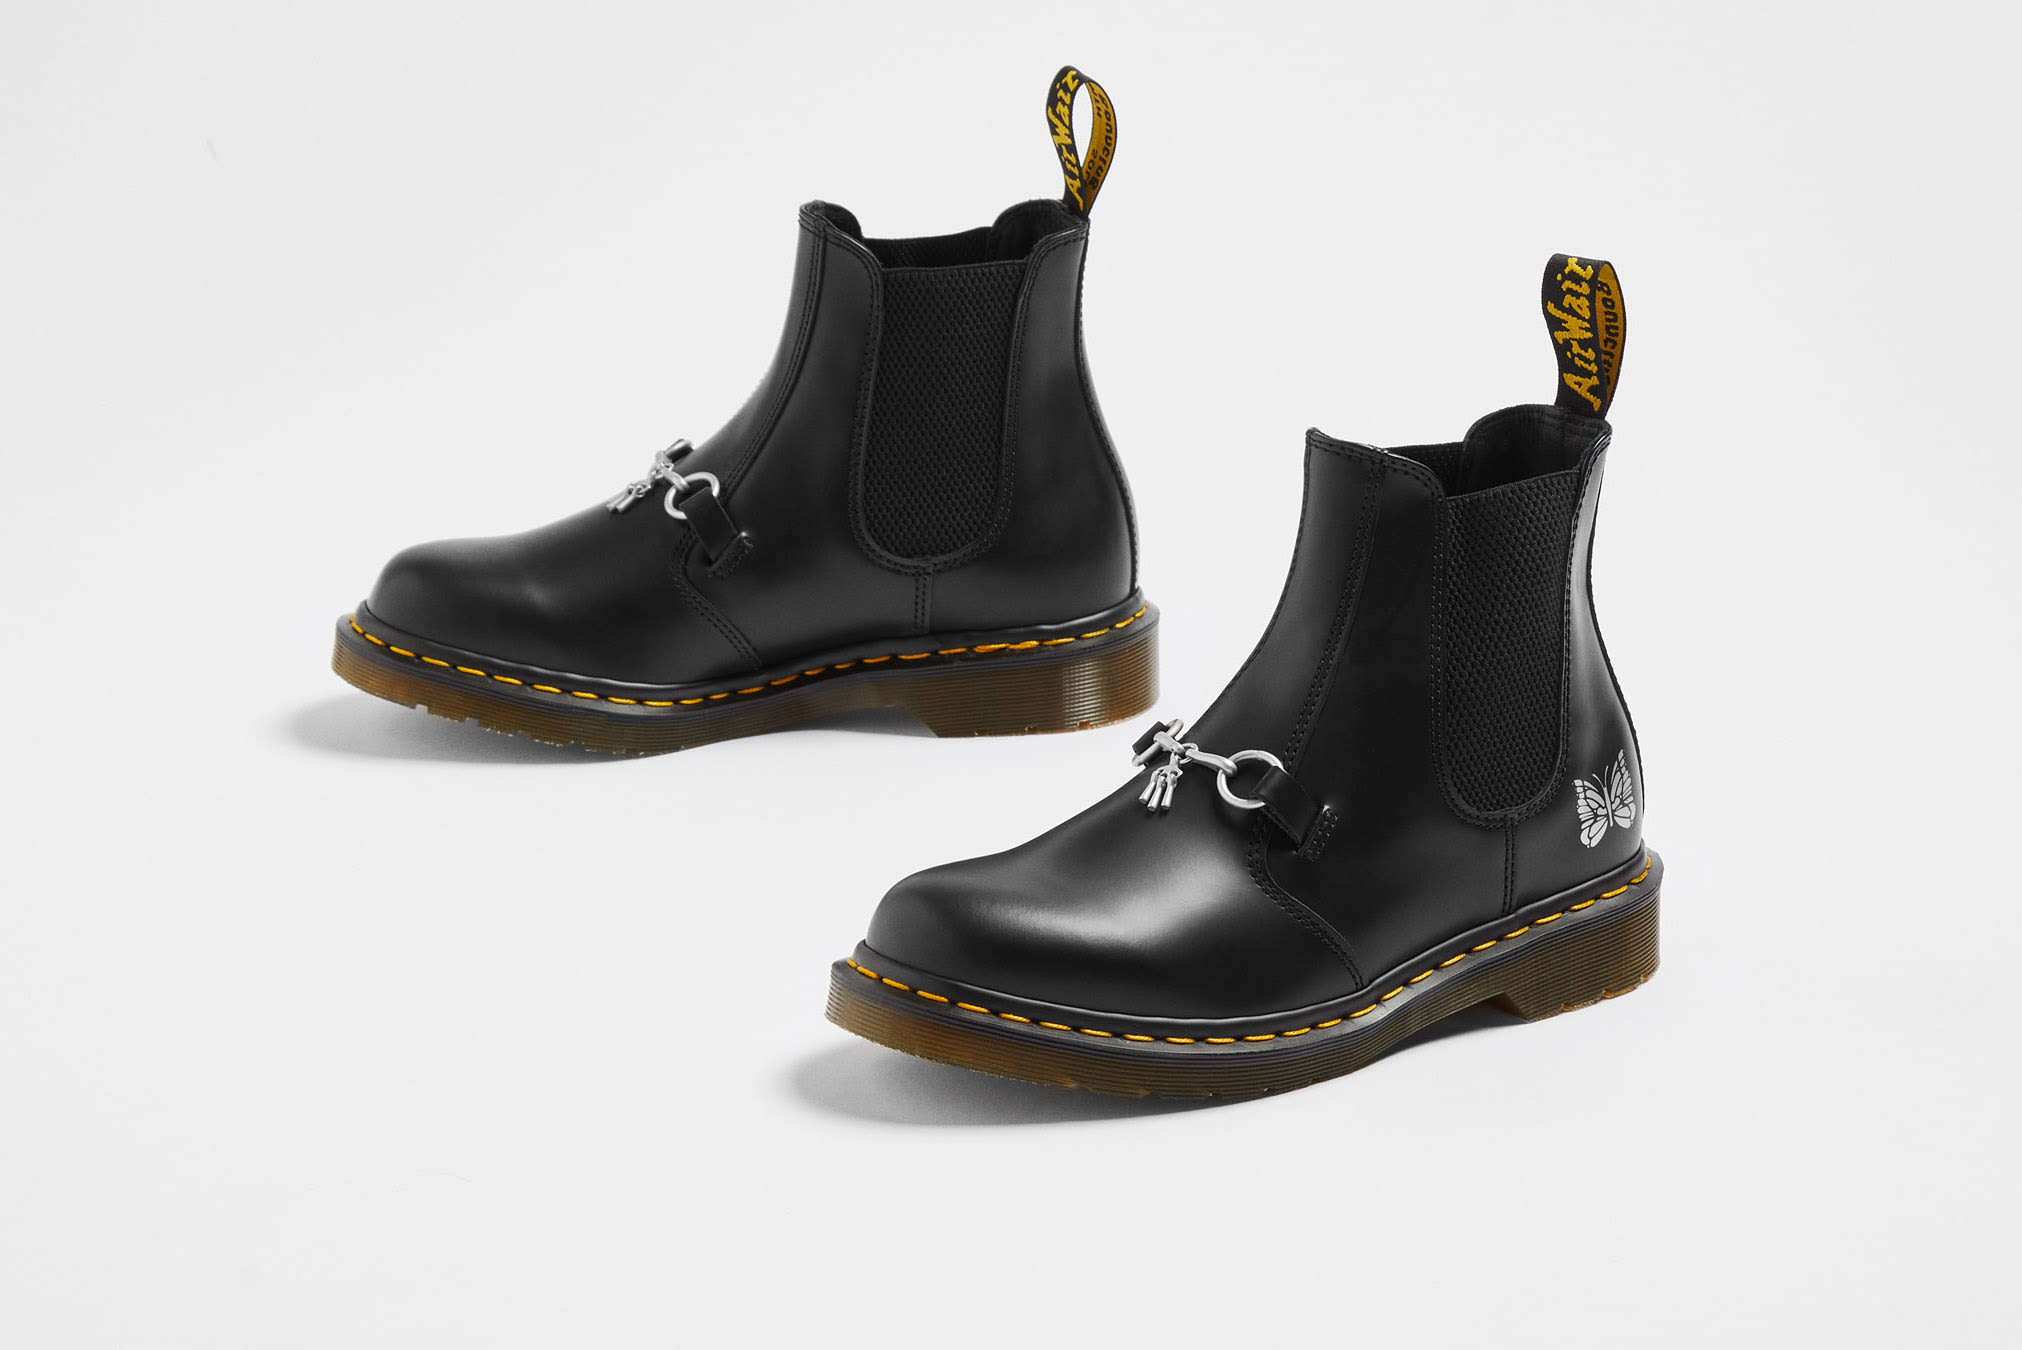 Dr. Martens x Needles 2976 Chelsea Boot - Made in England - 26908001